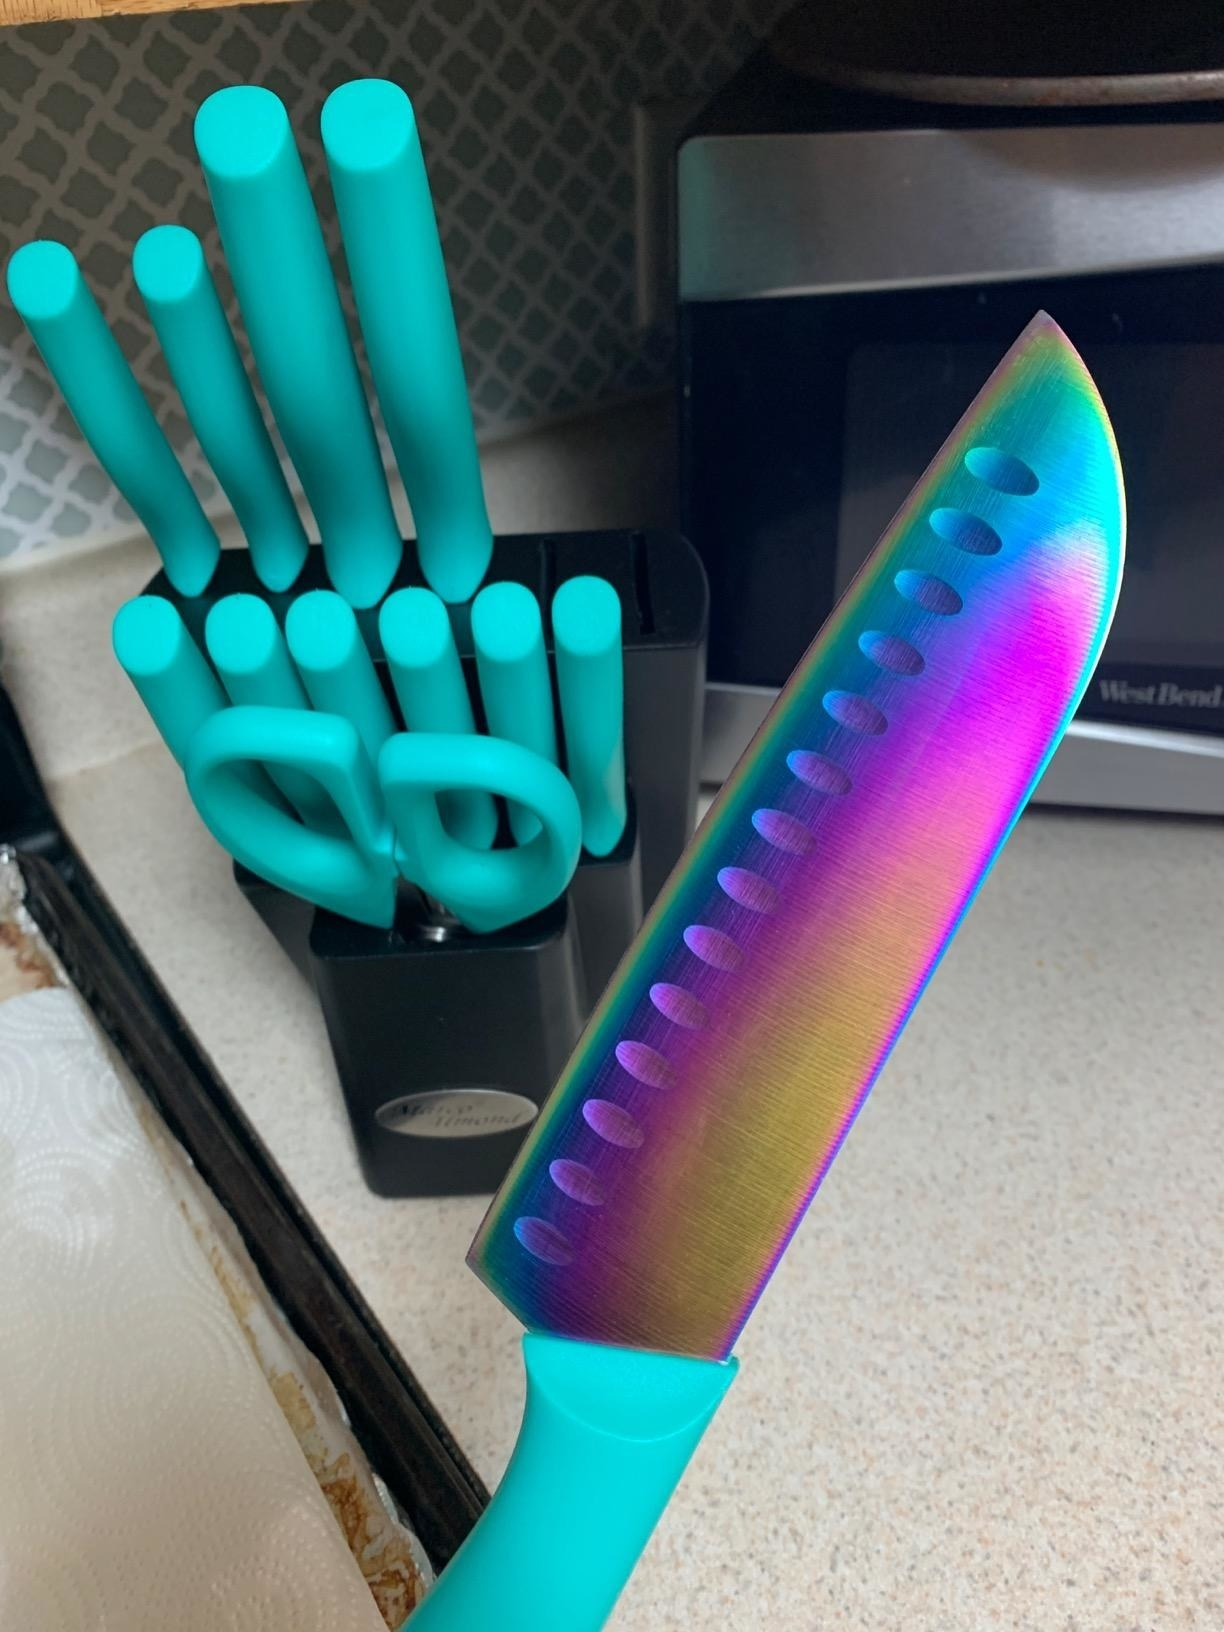 A knife with a rainbow-tinted blade and turquoise handle in front of a full set of knifes on a kitchen counter